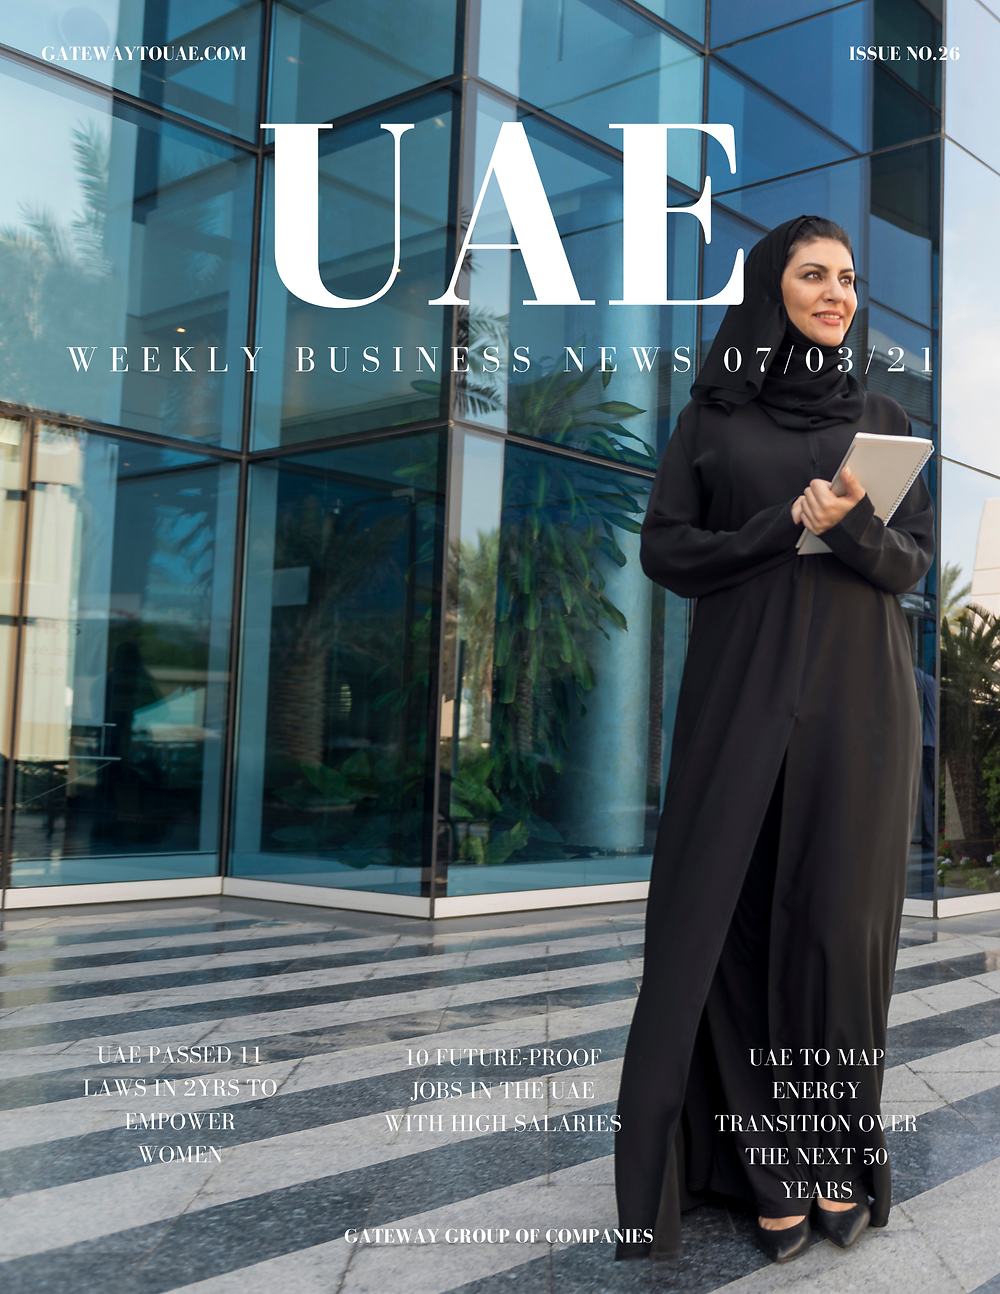 UAE weekly business news headlines 7th March 2021 Issue 26 Gateway Group Of Companies Abu Dhabi Dubai weekly magazine company formation business setup local sponsor service agent visas